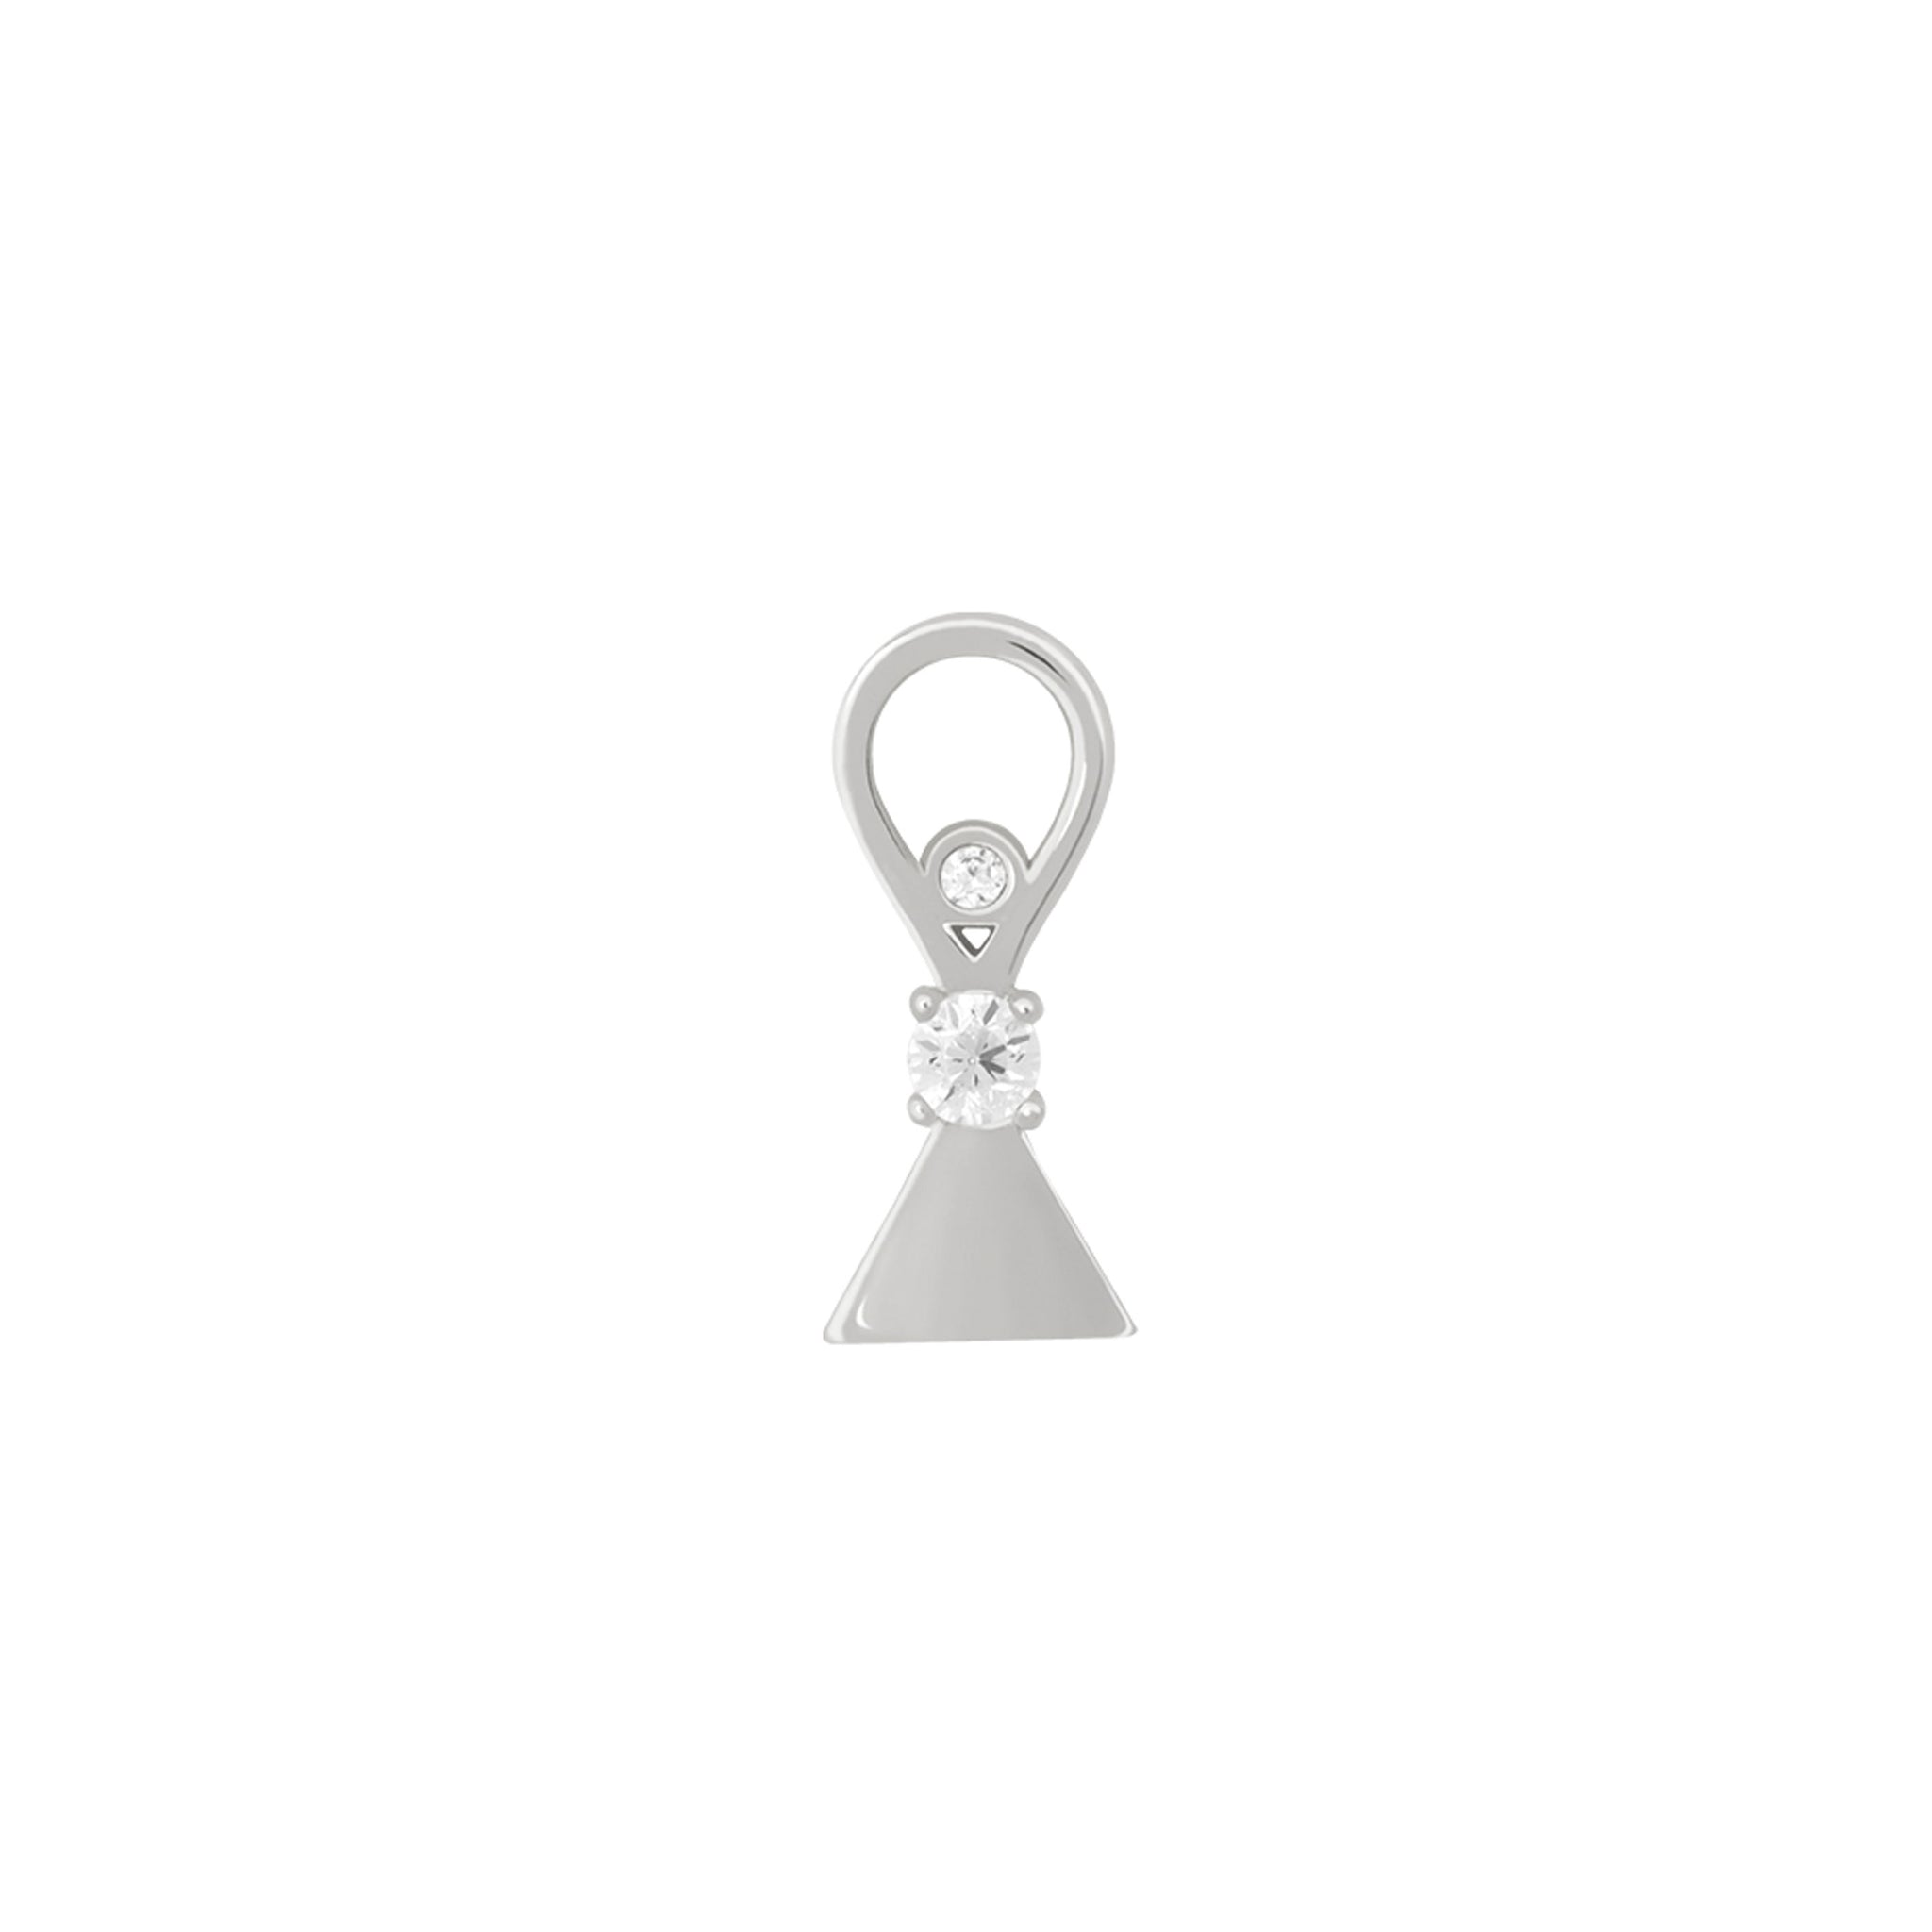 Triangle & Stones Earring Charm in Silver